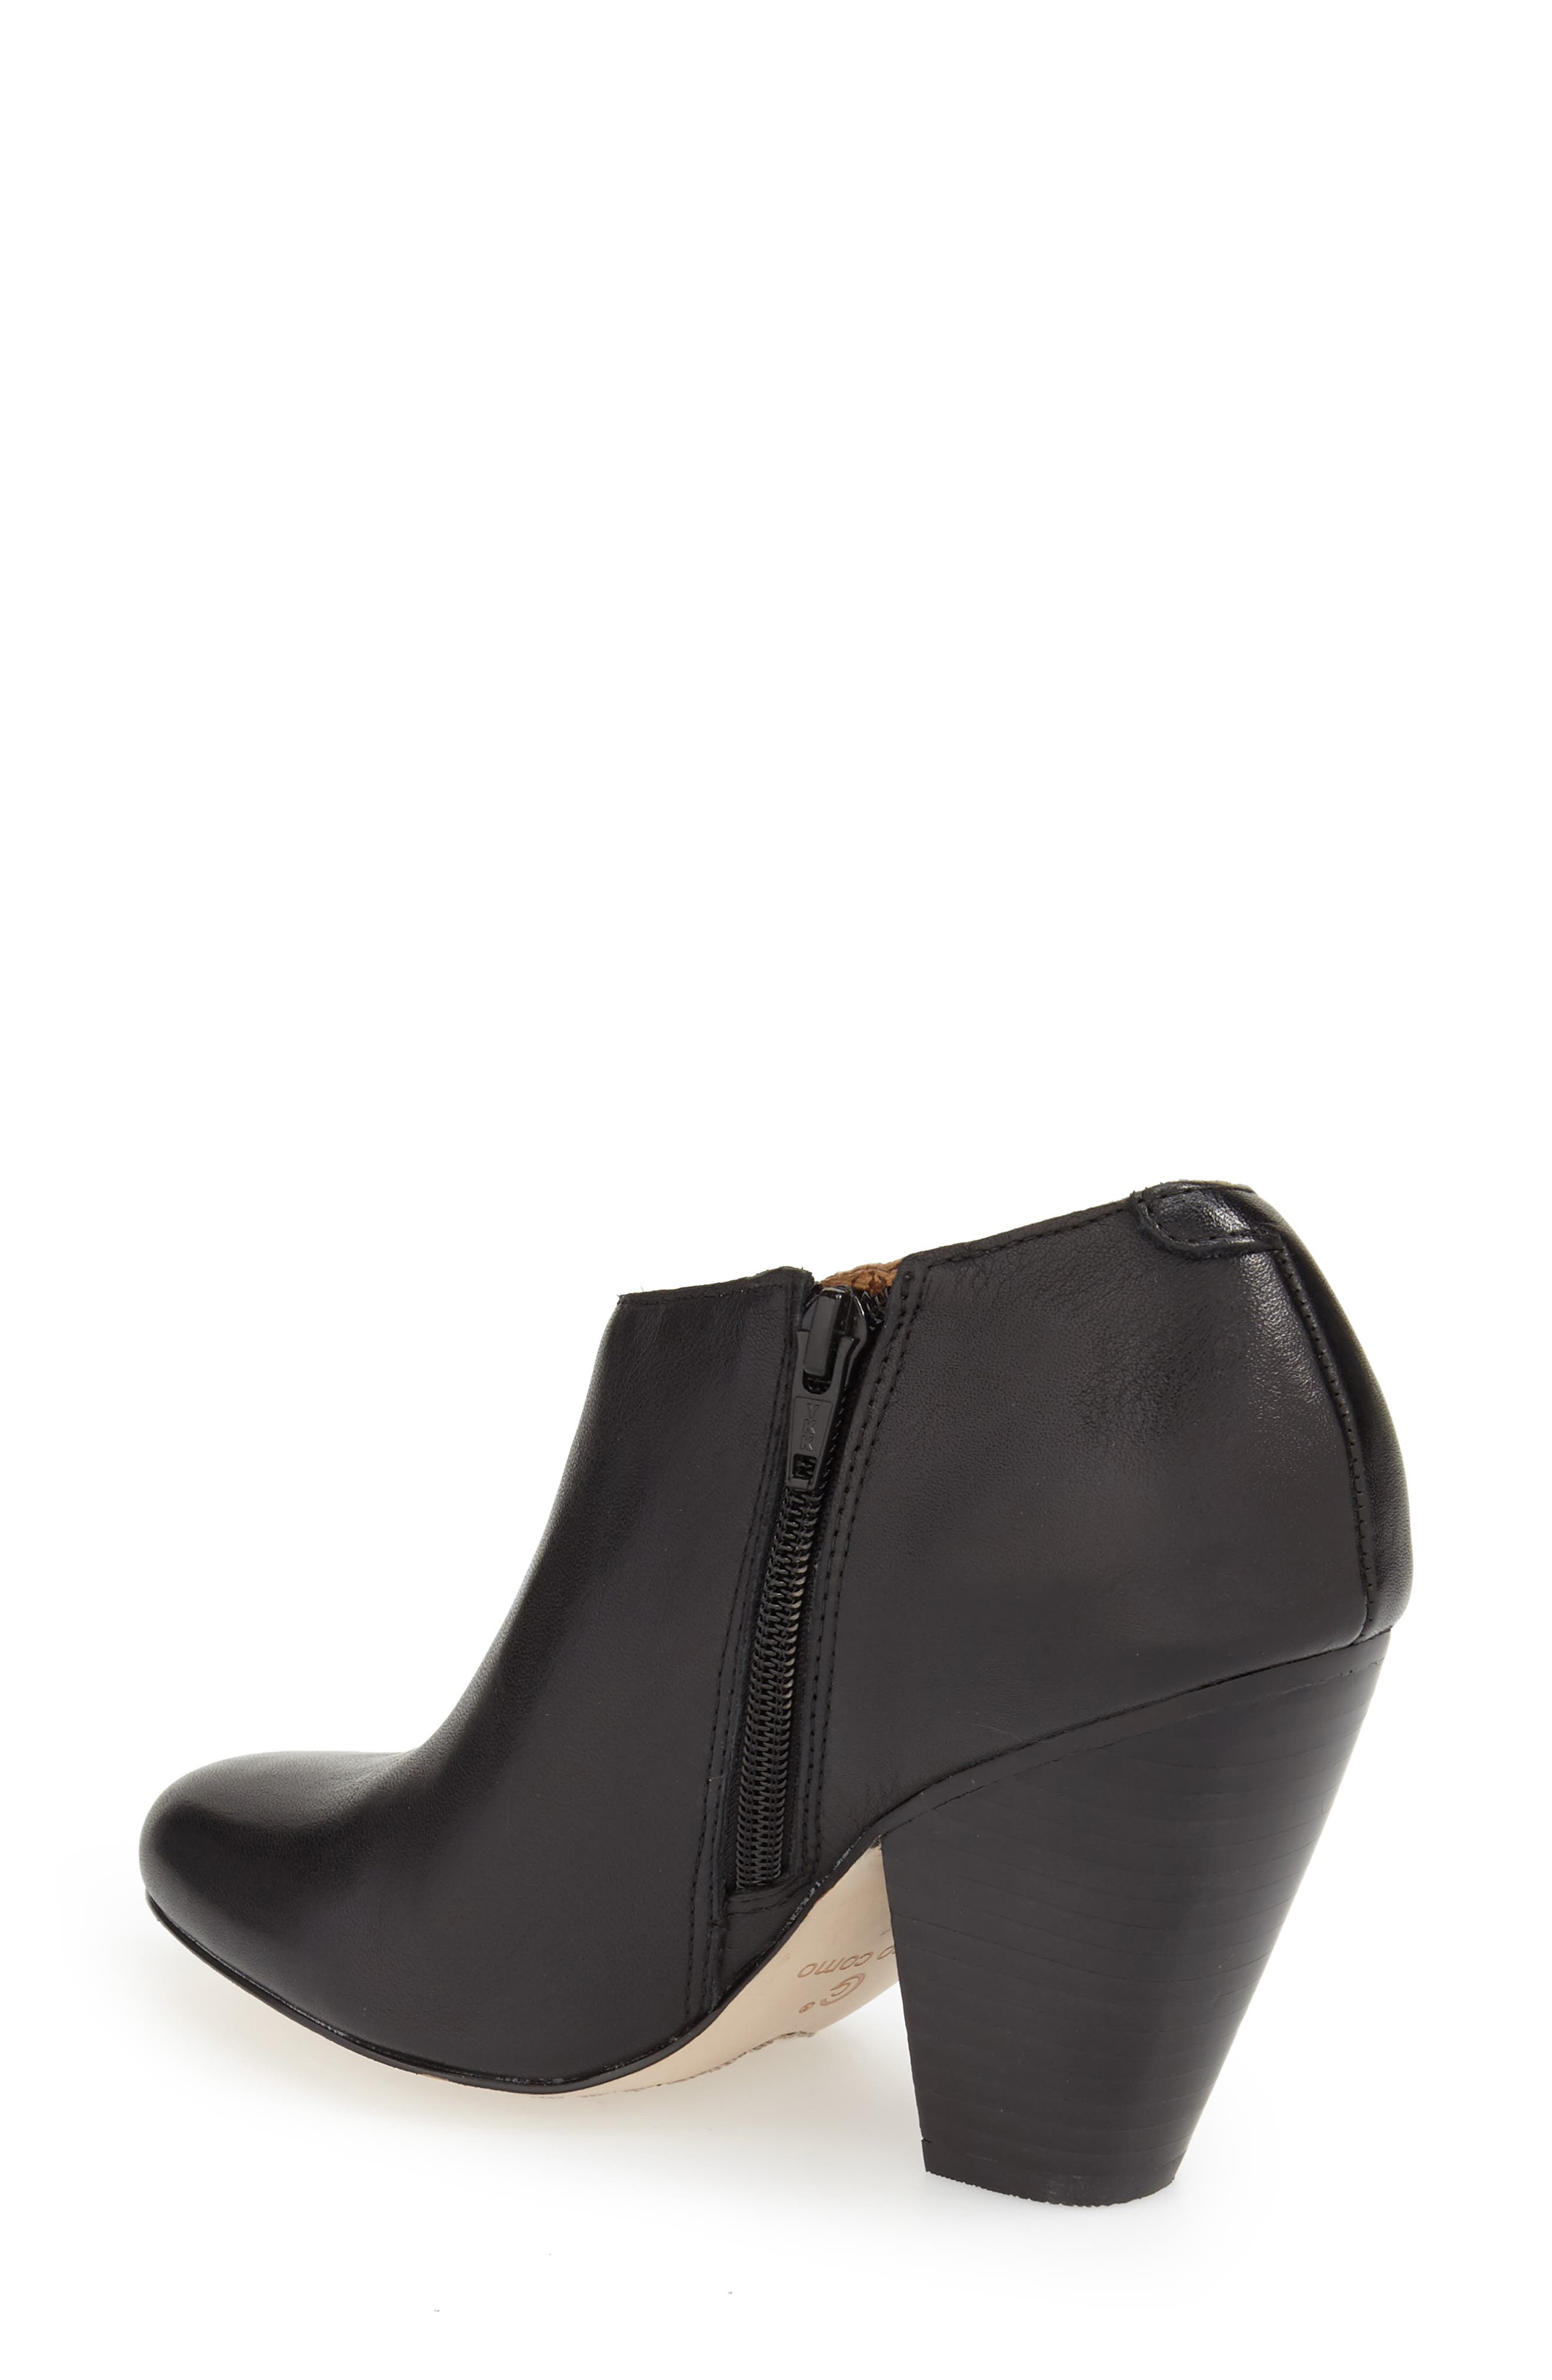 'Yonkers' Almond Toe Cutout Bootie,                             Alternate thumbnail 6, color,                             004